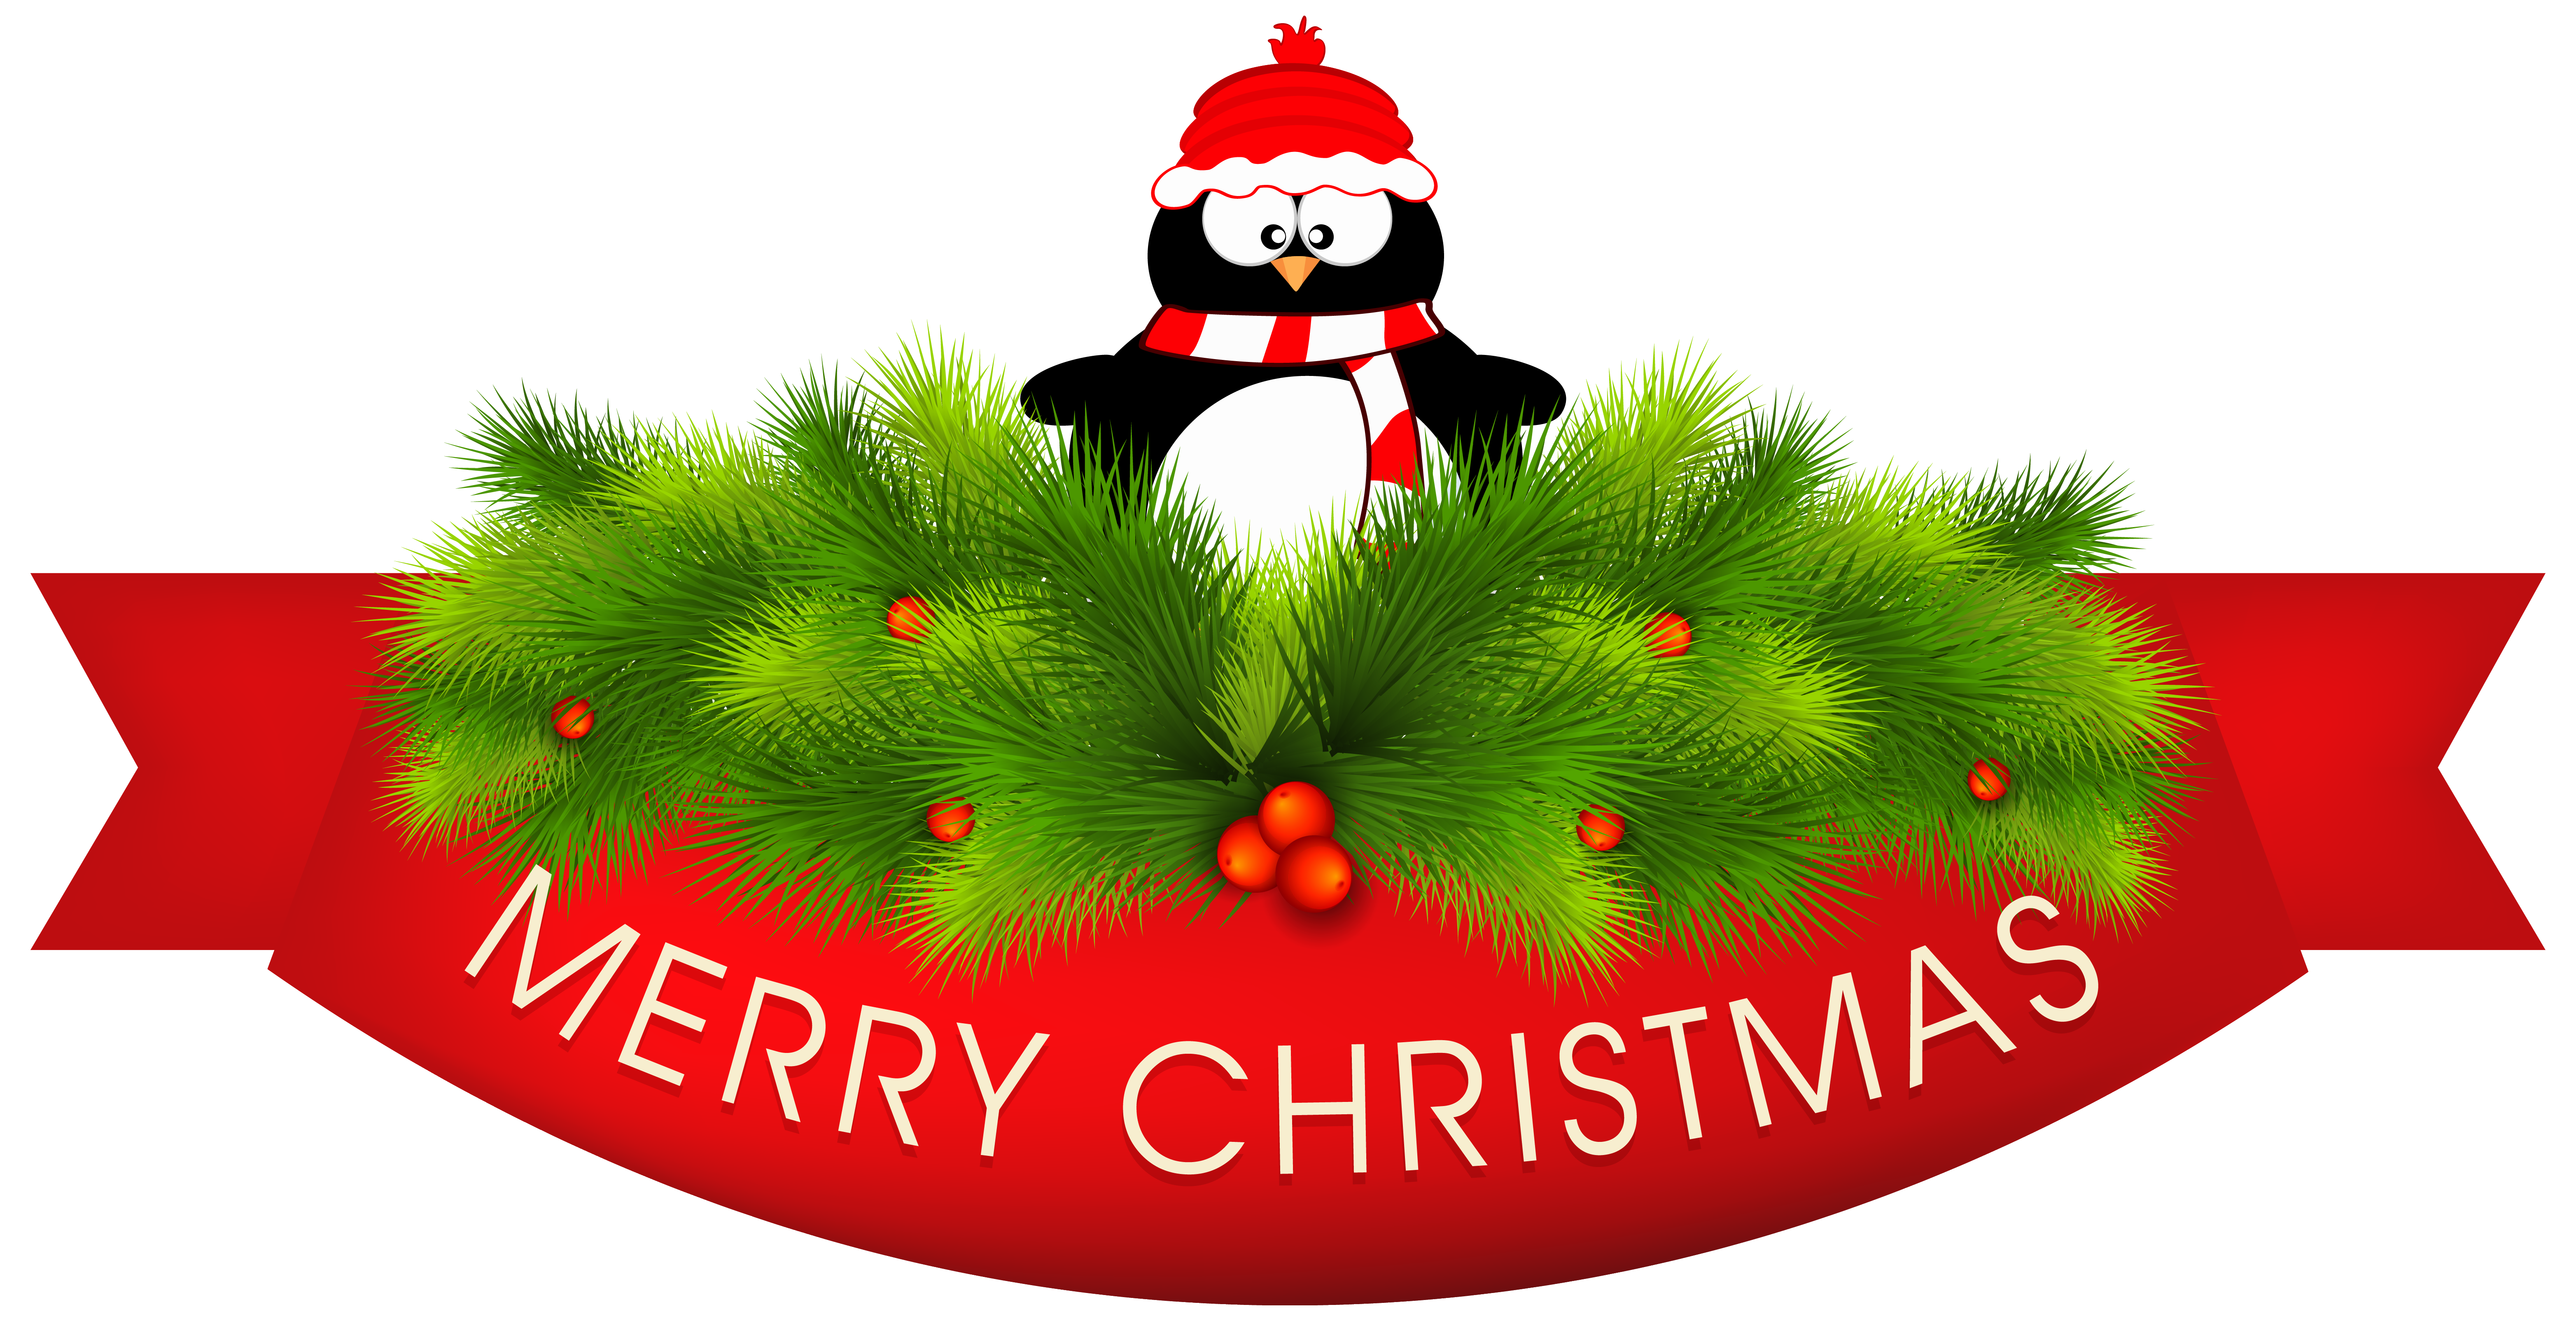 6256x3208 Merry Christmas Decor With Penguin Png Clipart Imageu200b Gallery